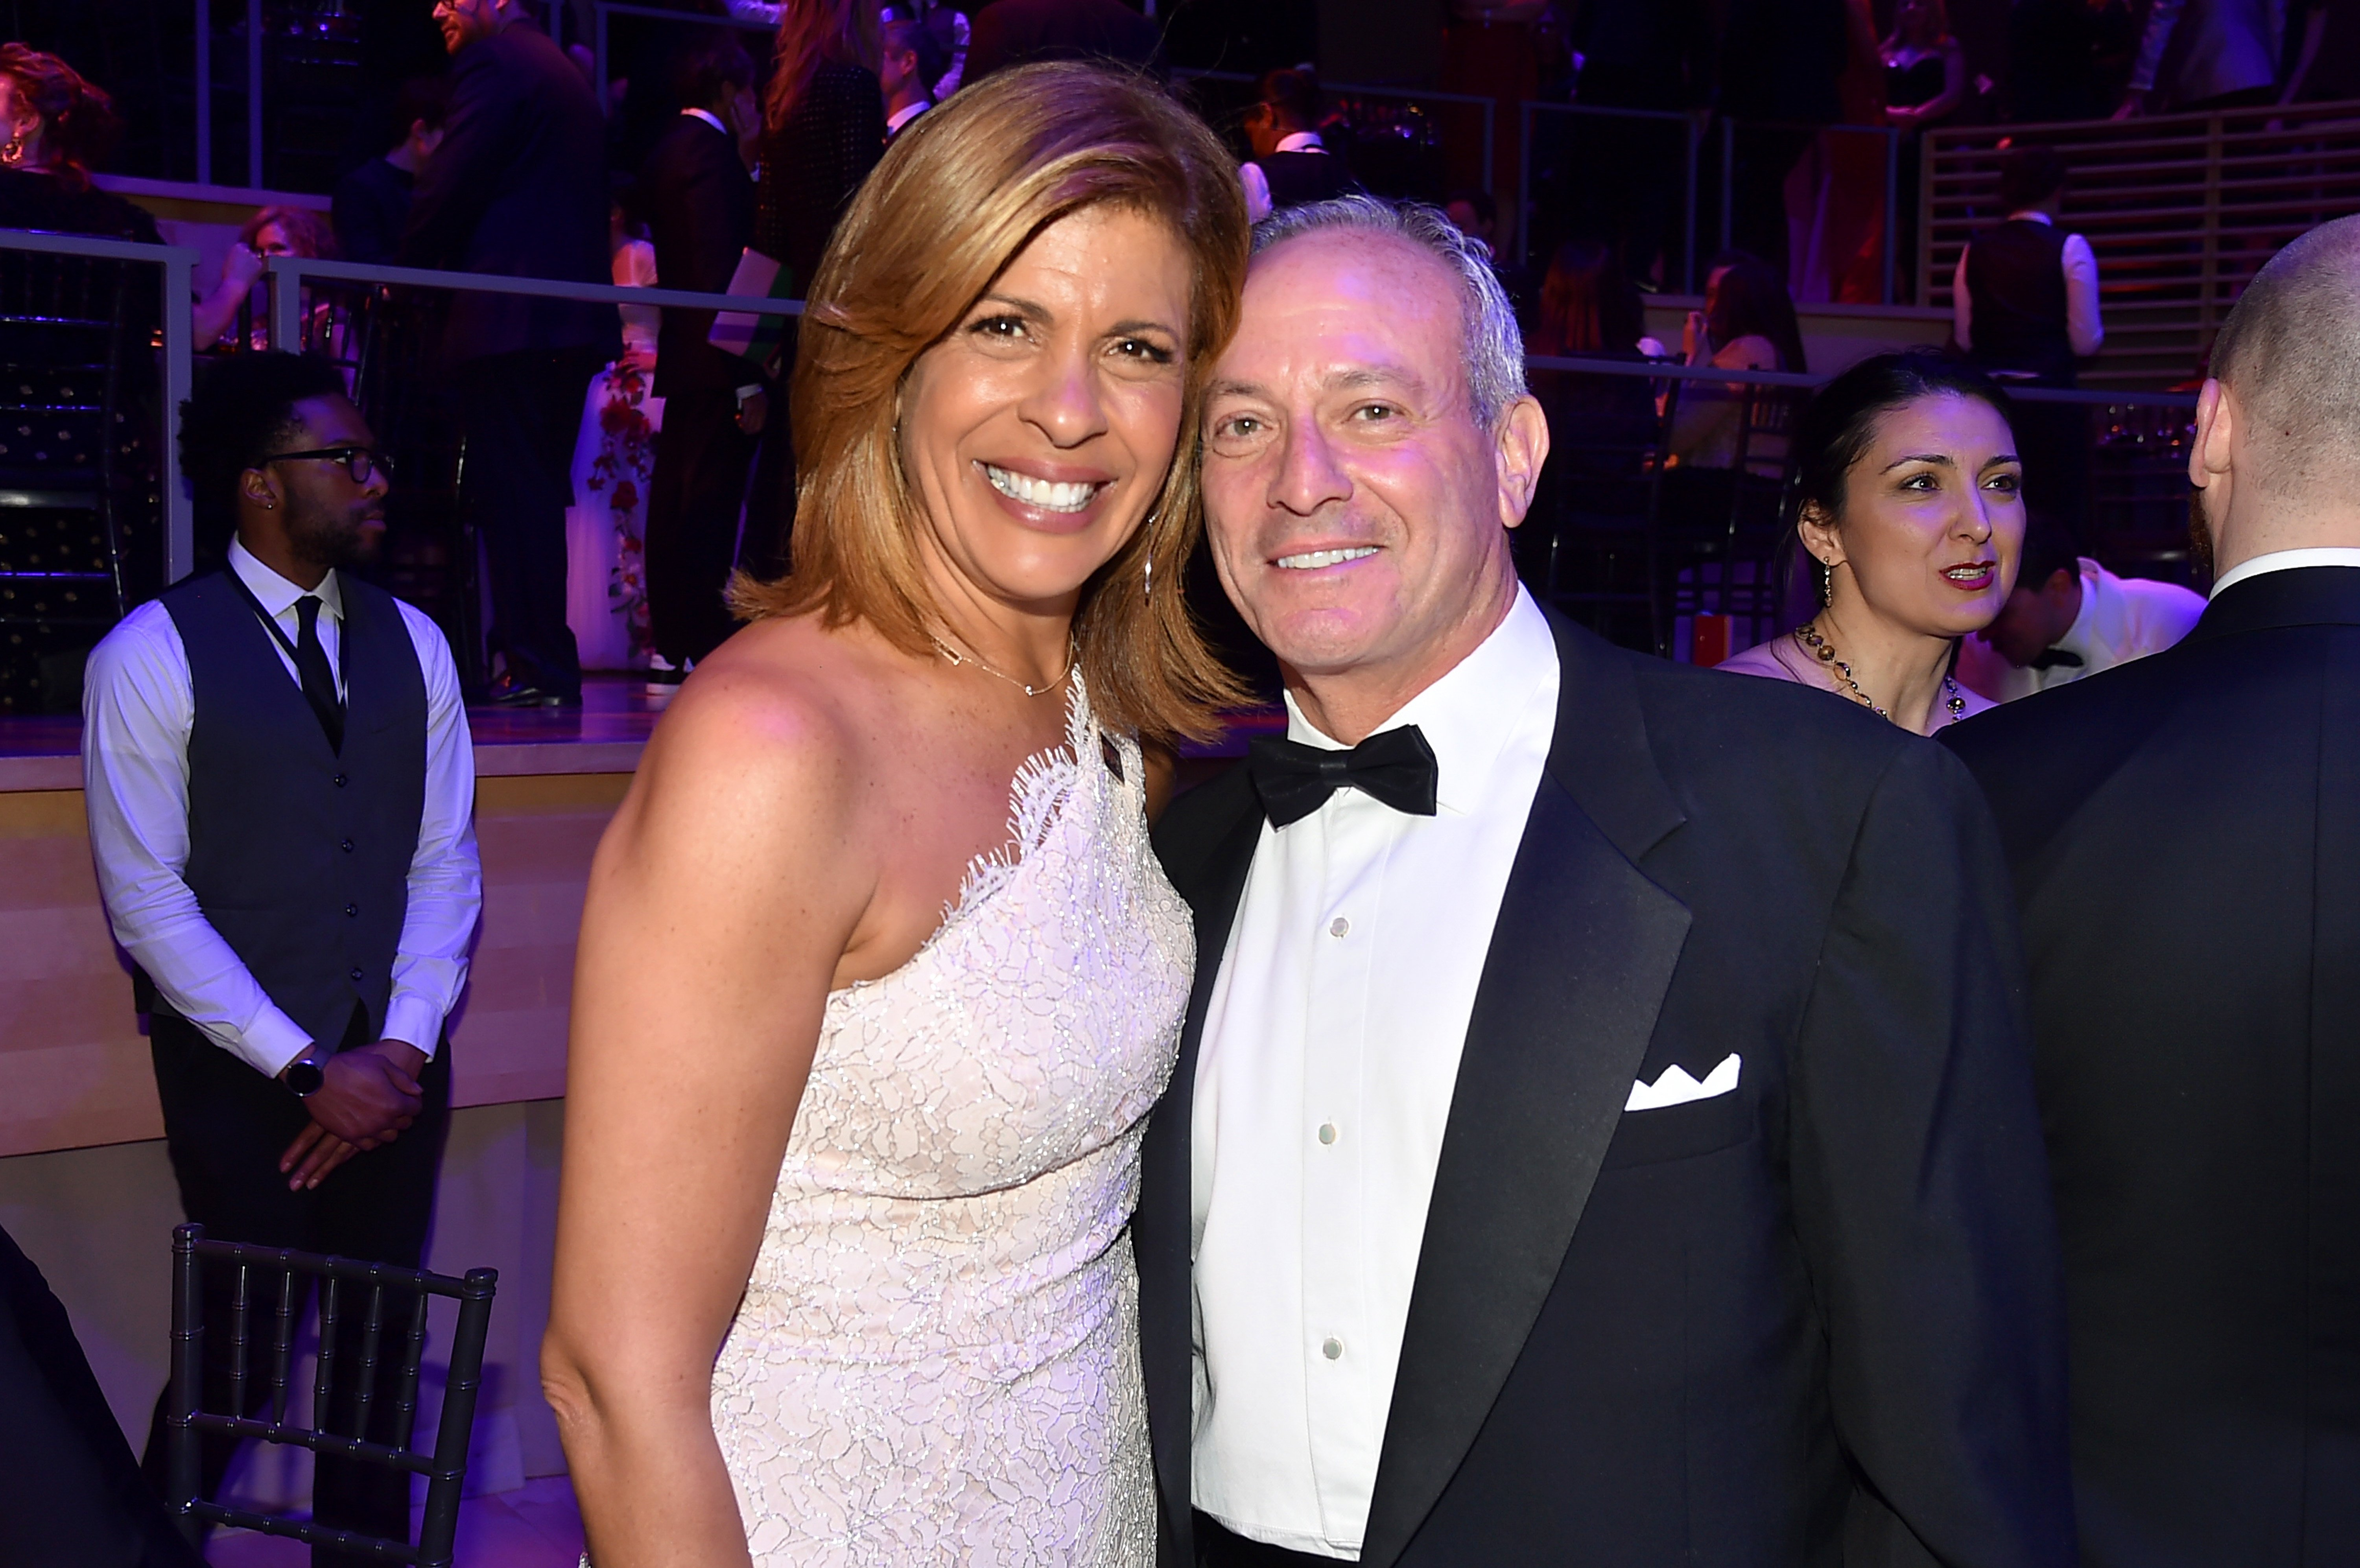 Hoda Kotb and Joel Schiffman attend the 2018 TIME 100 Gala at Jazz at Lincoln Center on April 24, 2018 in New York City | Photo: Getty Images